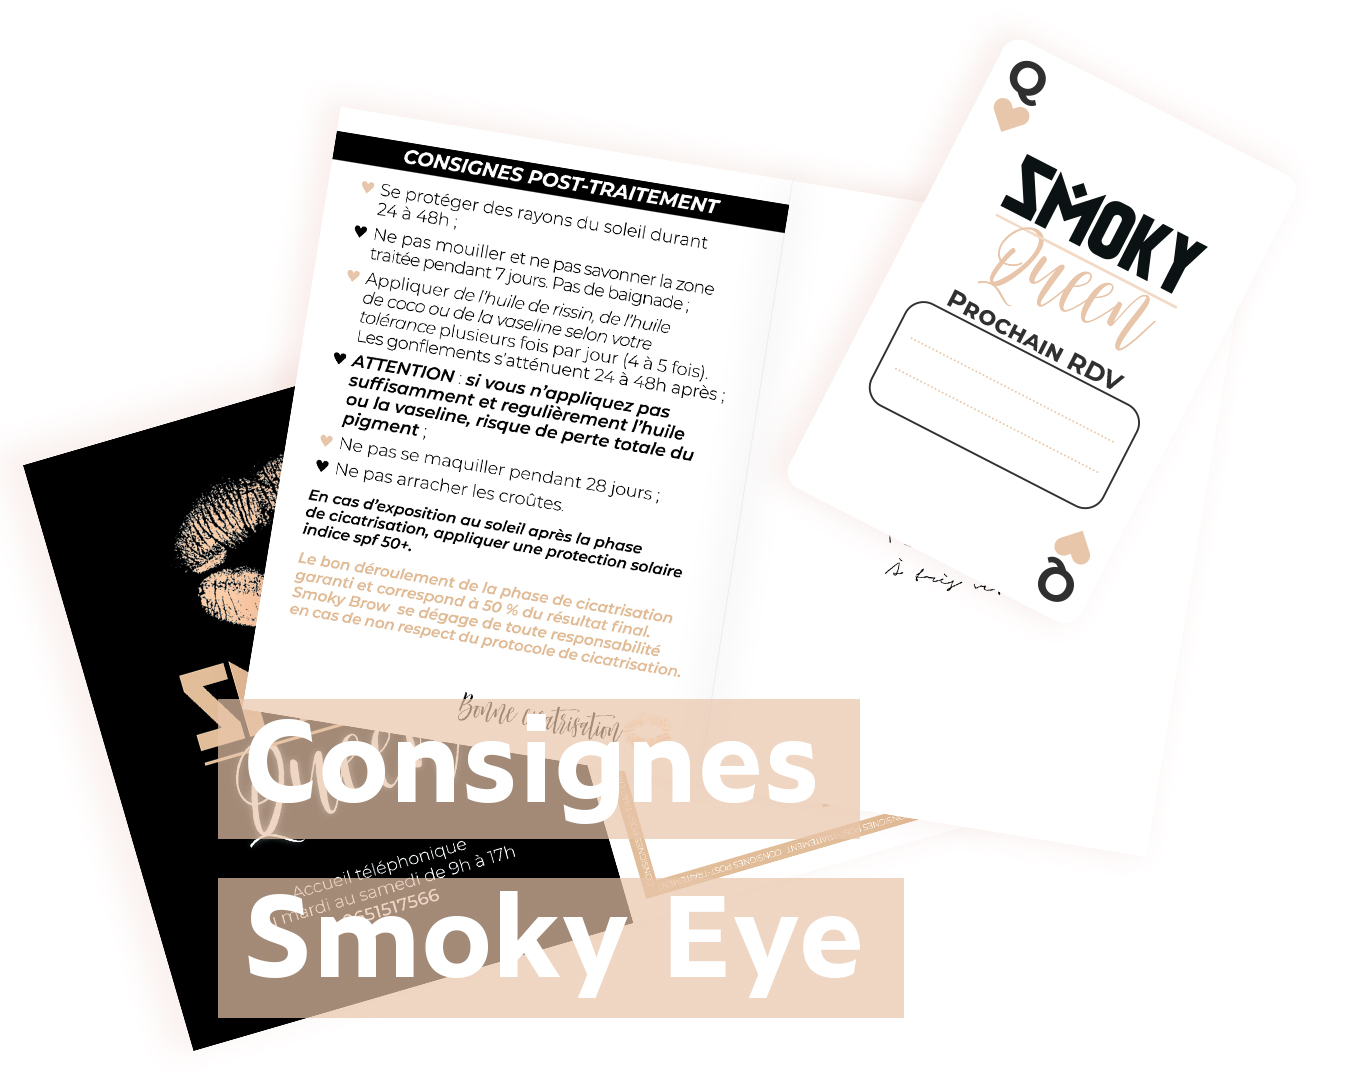 Consignes-Smoky-Eye